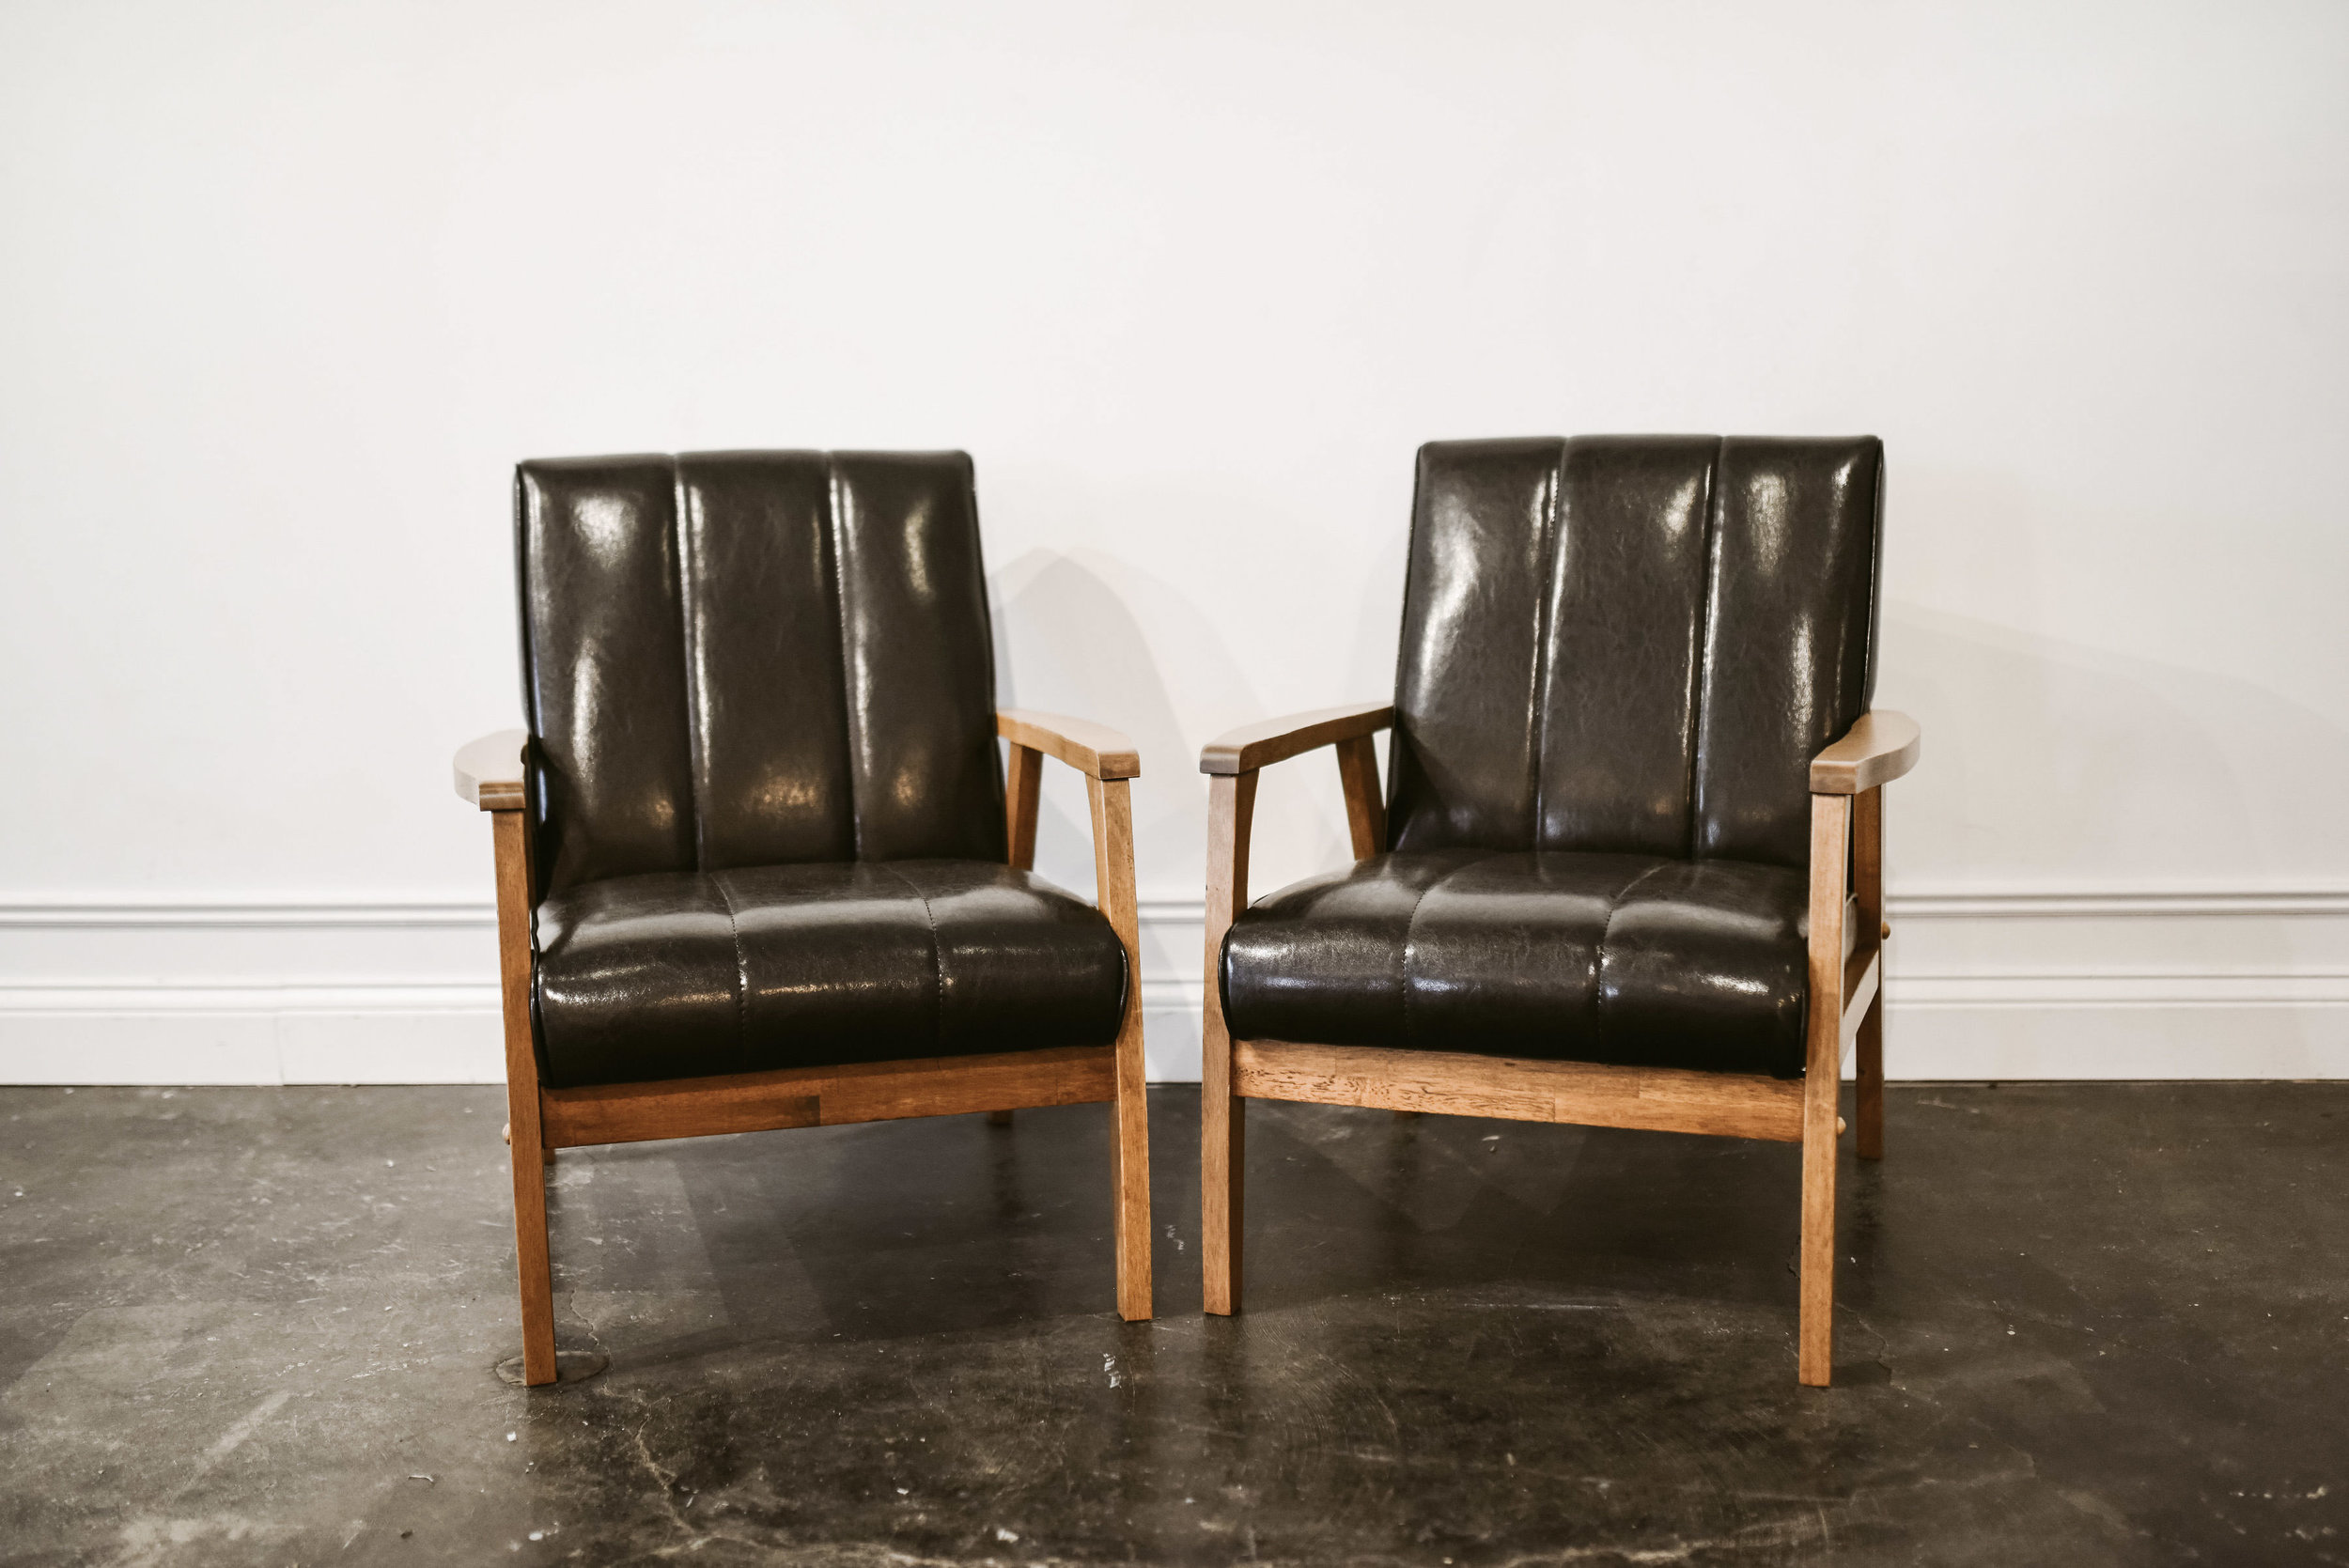 Veda chair